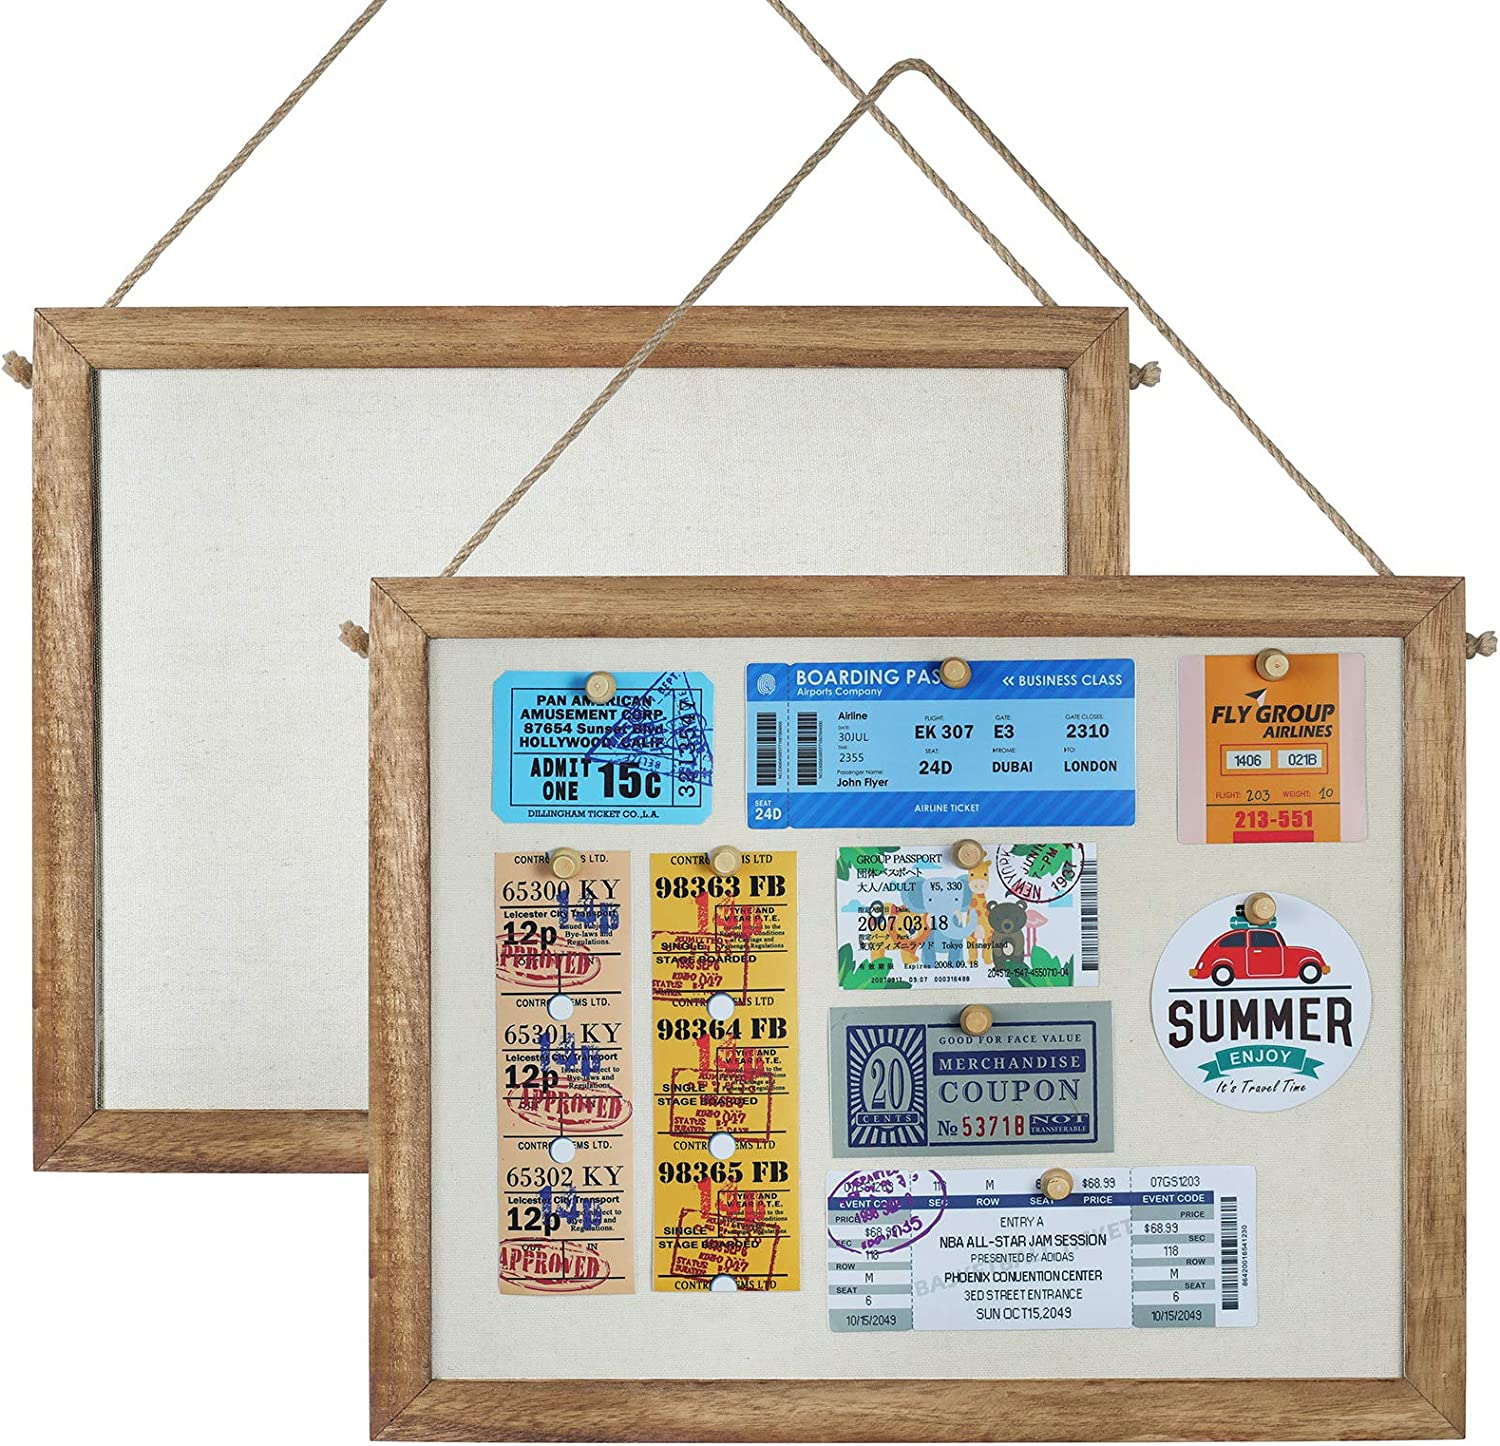 TJ.MOREE Small Bulletin Board 11'' X 14'' Framed Cork Board Decorative Hanging Pin Board, Farmhouse Fabric Linen Bulletin Board for Kids, Personal Office Wall Decor Home School Vision Board Set of 2